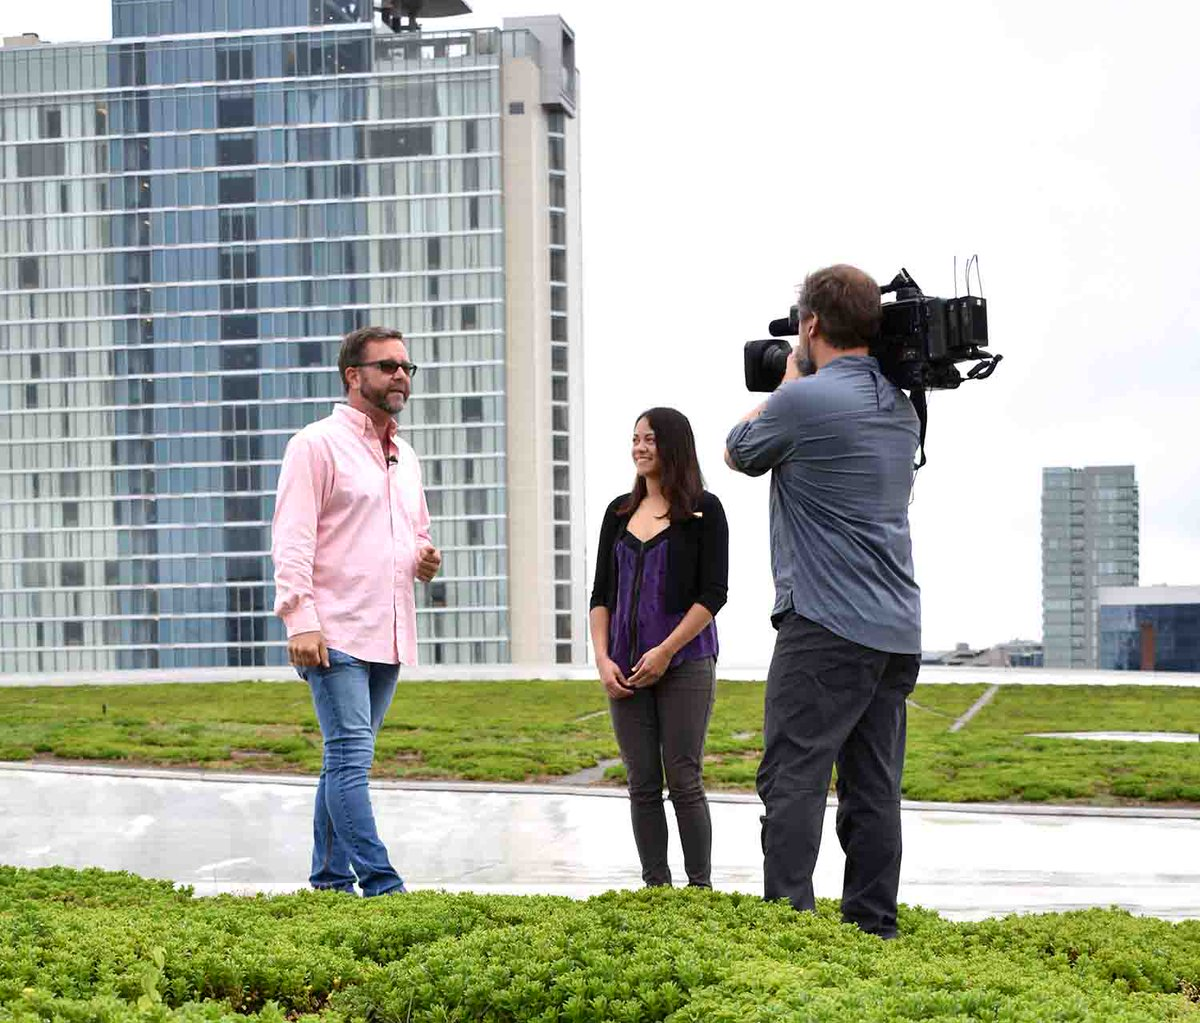 Catch tonight's episode of Volunteer Gardener on @npt8 featuring the MCC #greenroof! It will premier at 7:30pm, and will be broadcasted again this Sunday at 9:30am! #Sustainability